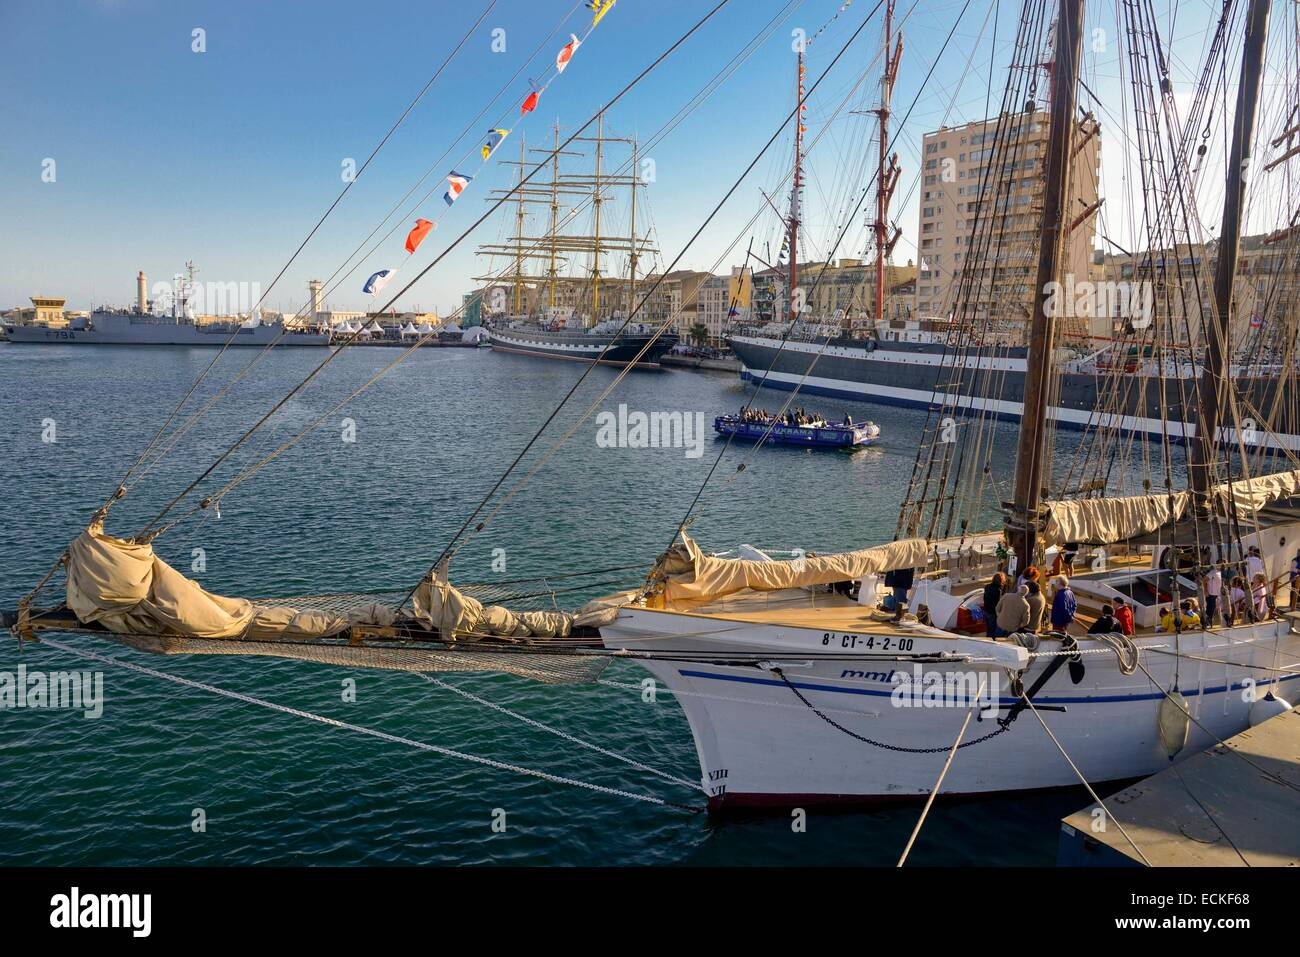 France, Herault, Sete, Quay of Commander Samary, Escale a Sete Festival, Catalan schooner Santa Eulalia with the - Stock Image